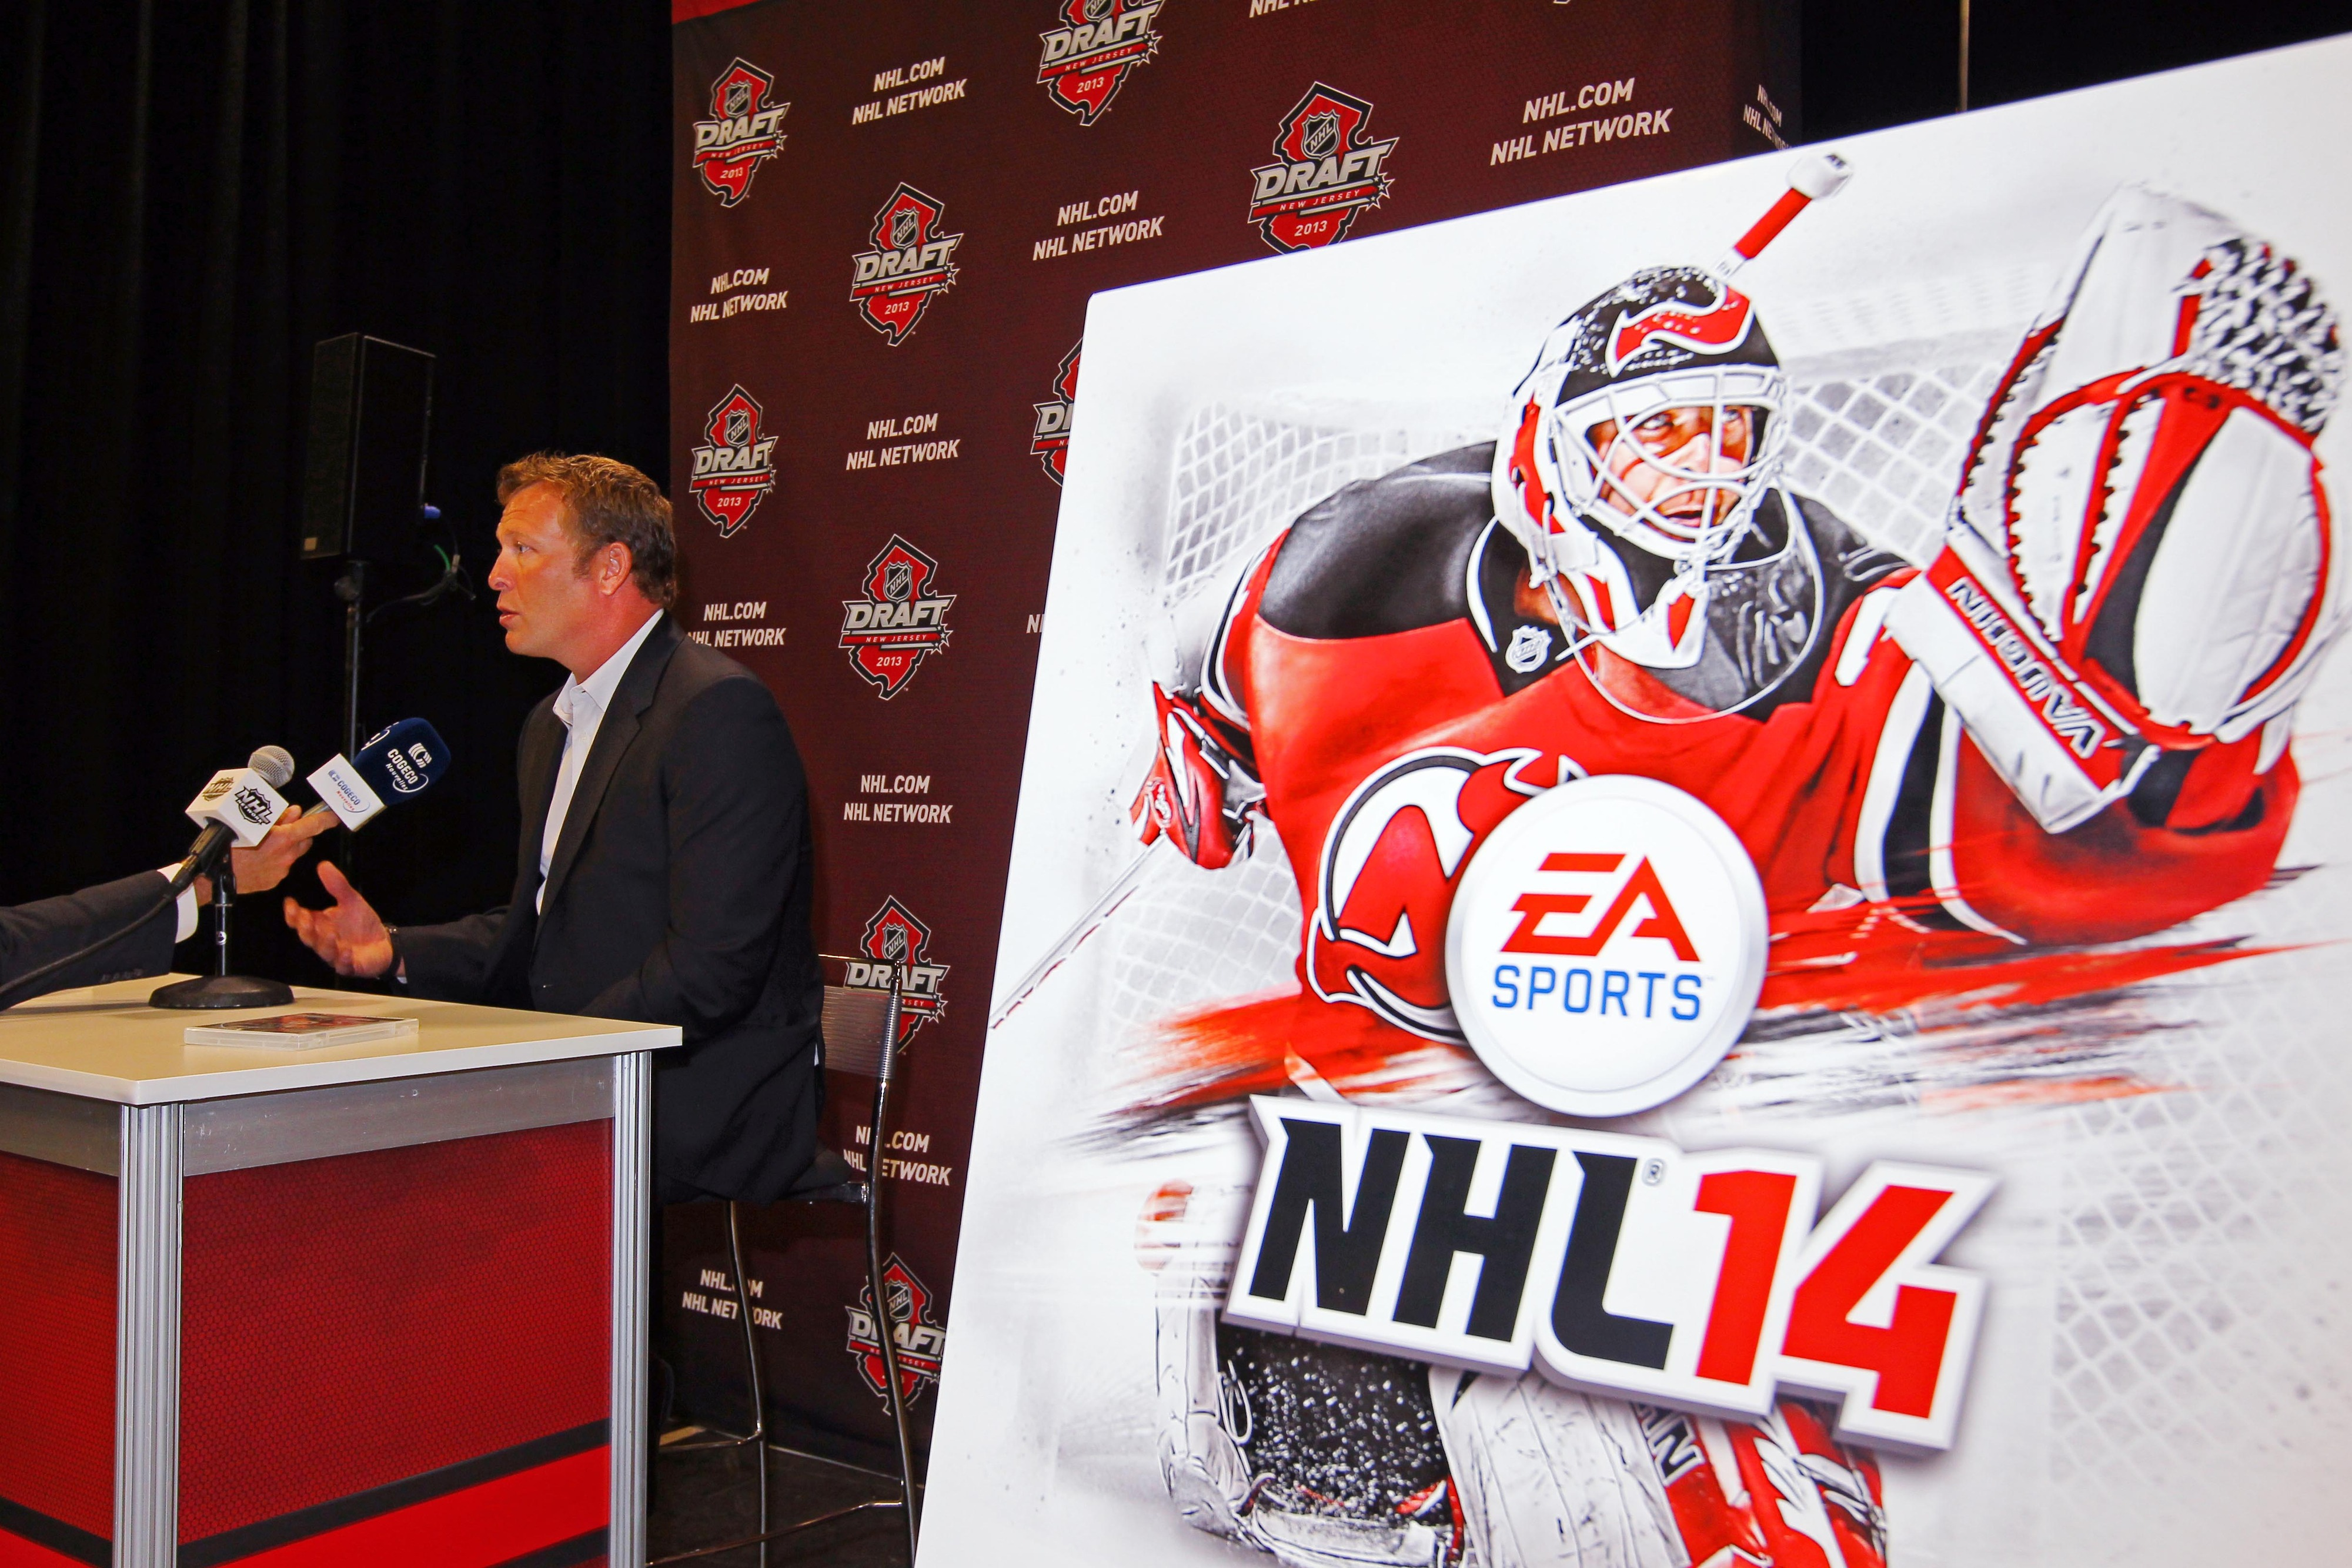 NHL 14 not only include Martin Brodeur on the cover but a better team than the NHL '94 Devils.